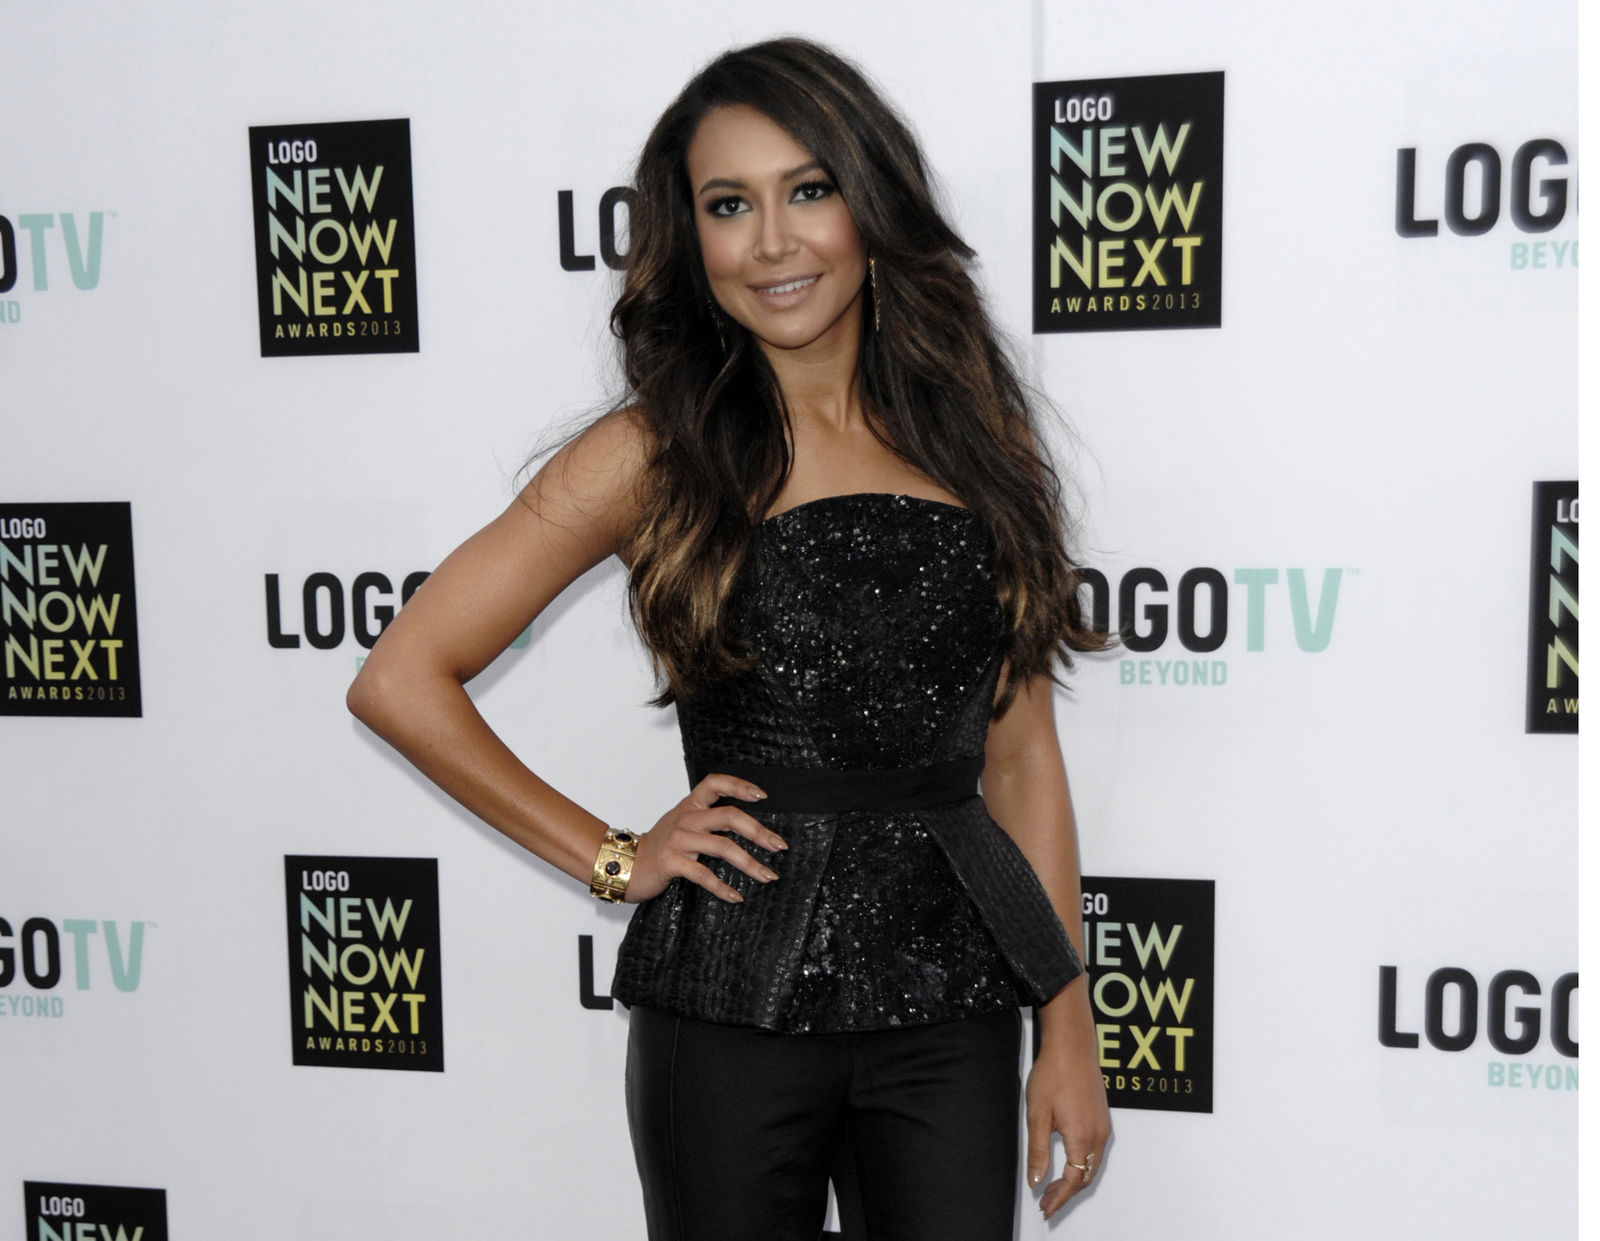 FILE - In this April 1,3 2013, file photo, actress Naya Rivera arrives at Logo's NewNowNext Awards in Los Angeles. (Photo by Dan Steinberg/Invision/AP, File)